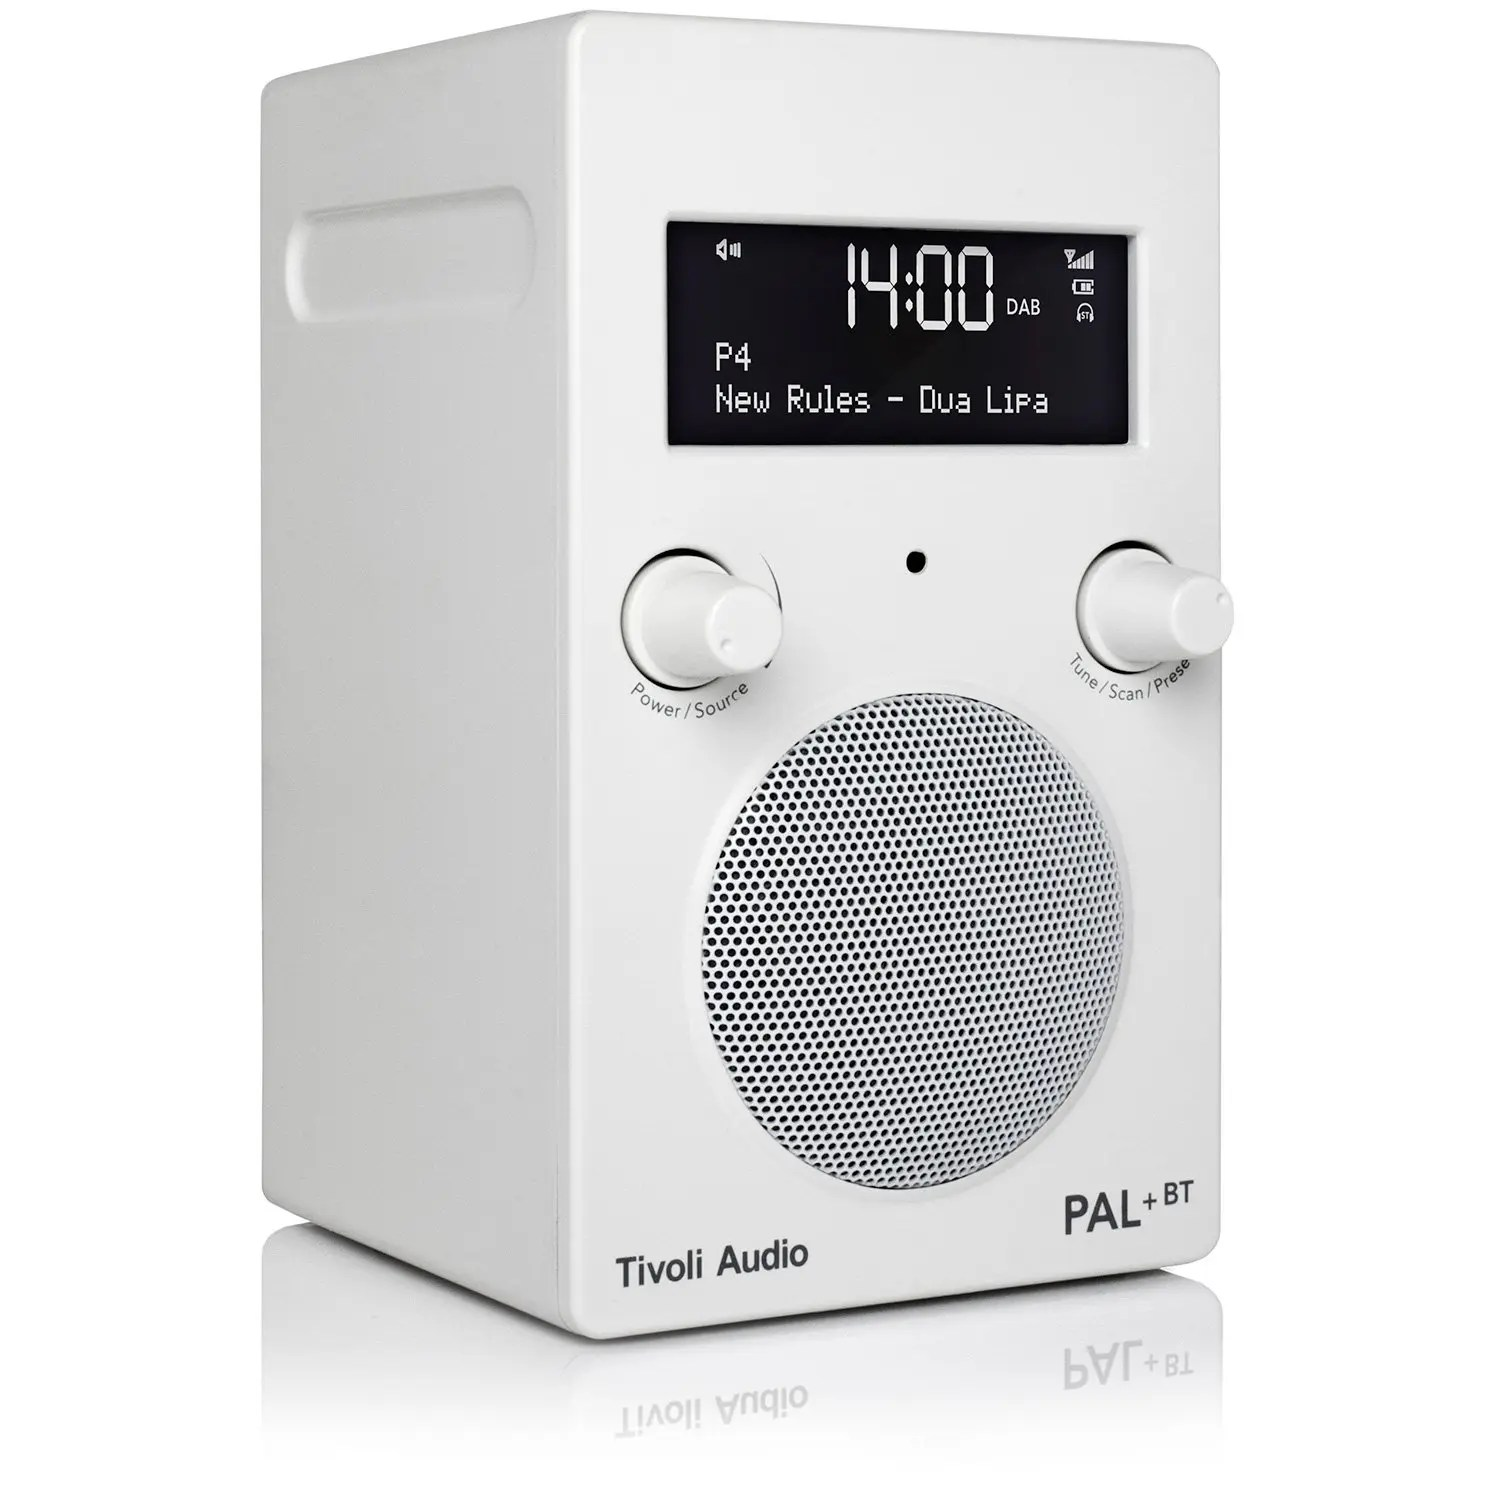 Tivoli Radio Pal Tivoli Audio Pal Bt New Design Bluetooth Radio